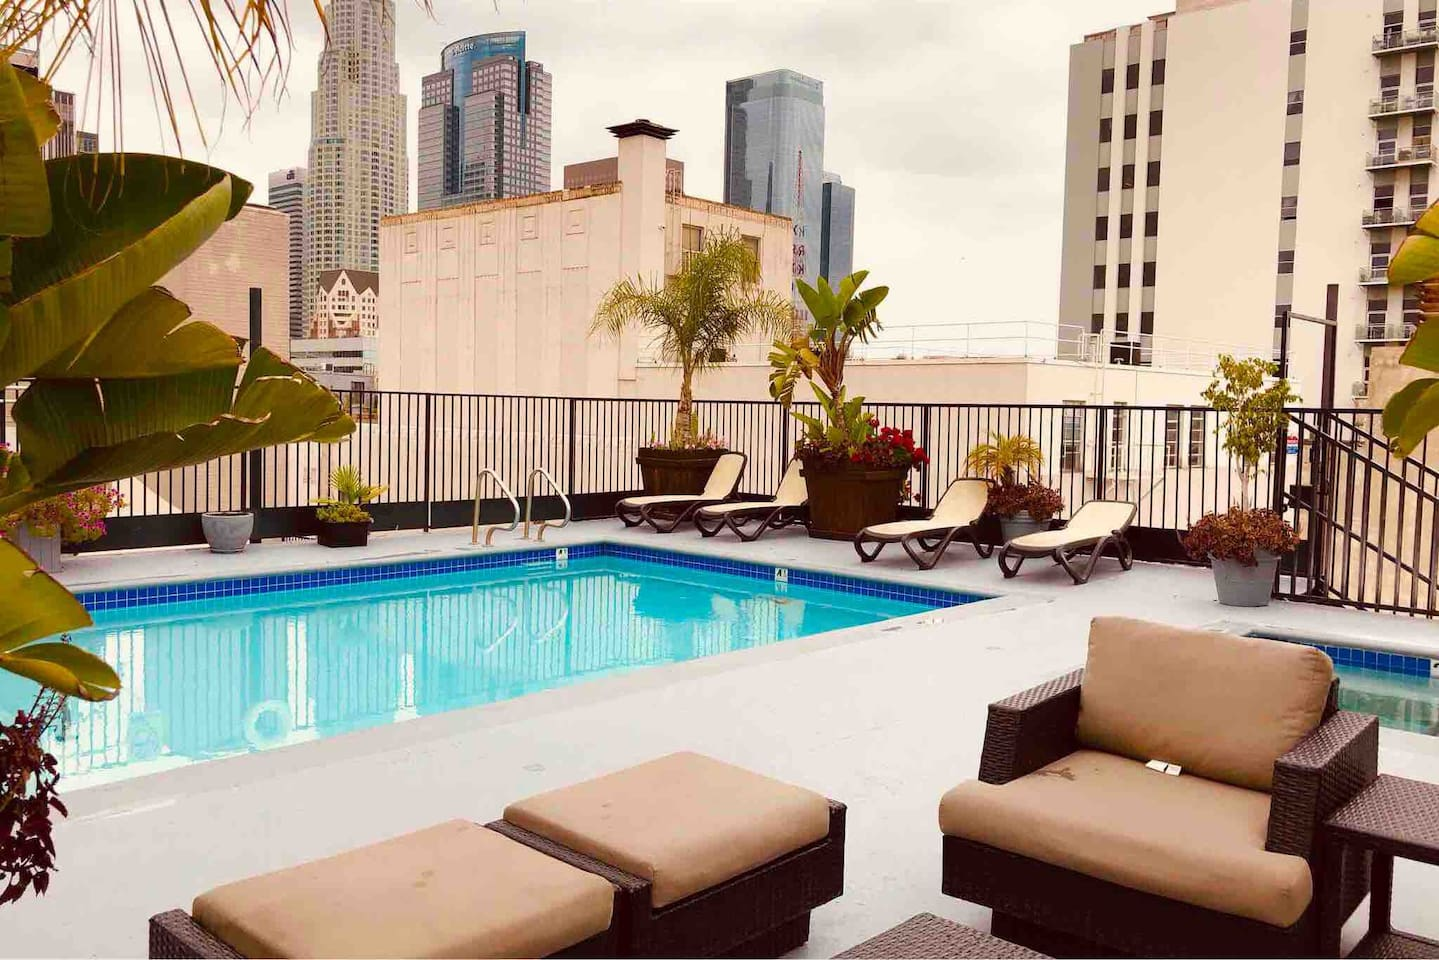 The Marilyn Monroe Room includes free use of the awesome rooftop jacuzzi and pool. Open nightly until 10pm and weekends until midnight! The jacuzzi is always hot and ready...